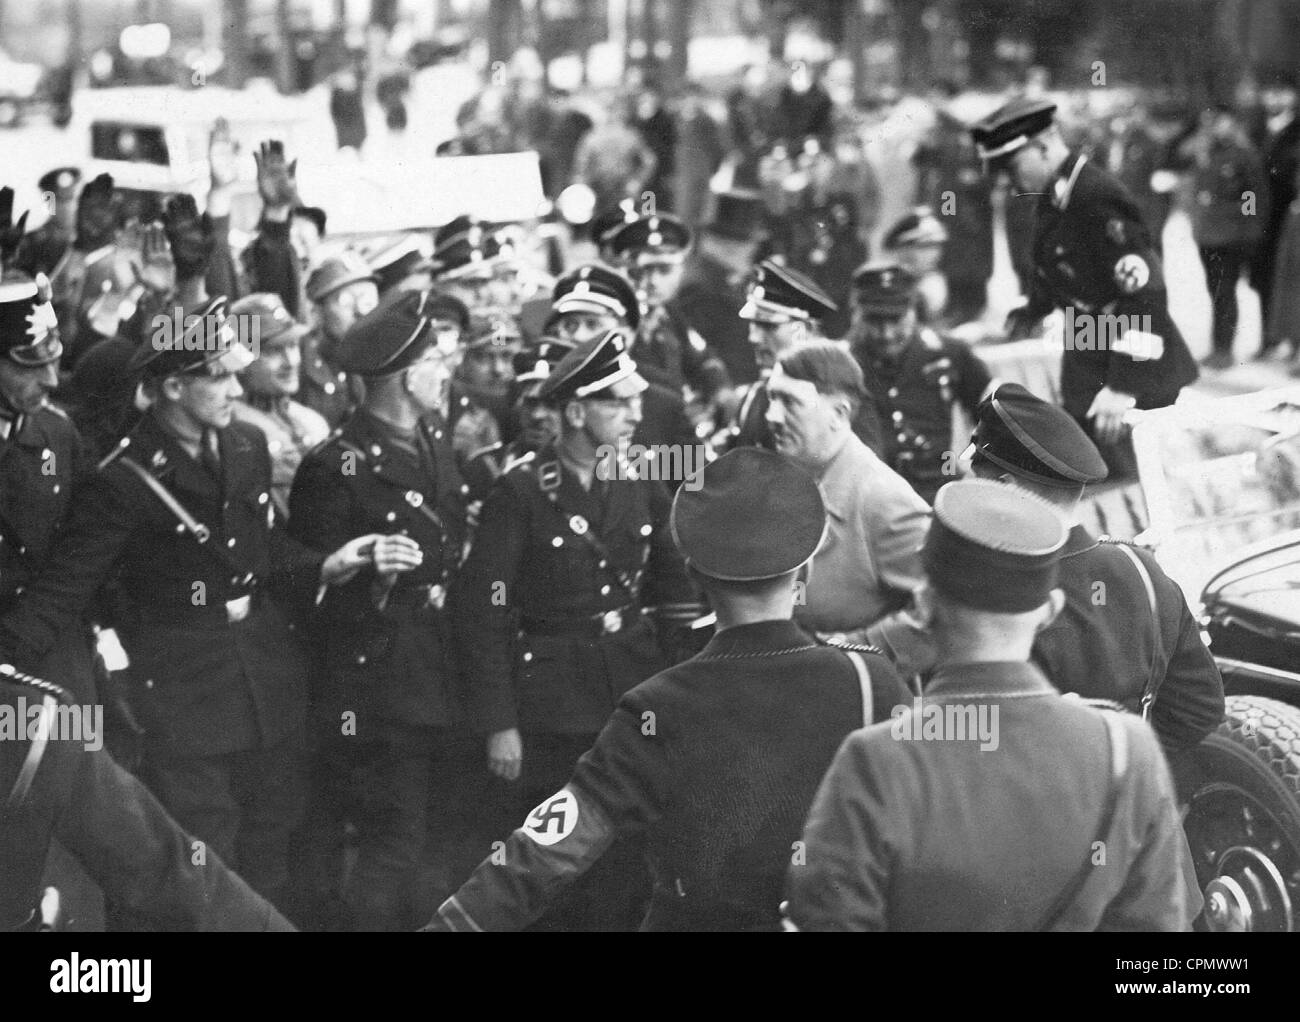 Adolf Hitler on his way to the Reichstag, 1934 - Stock Image